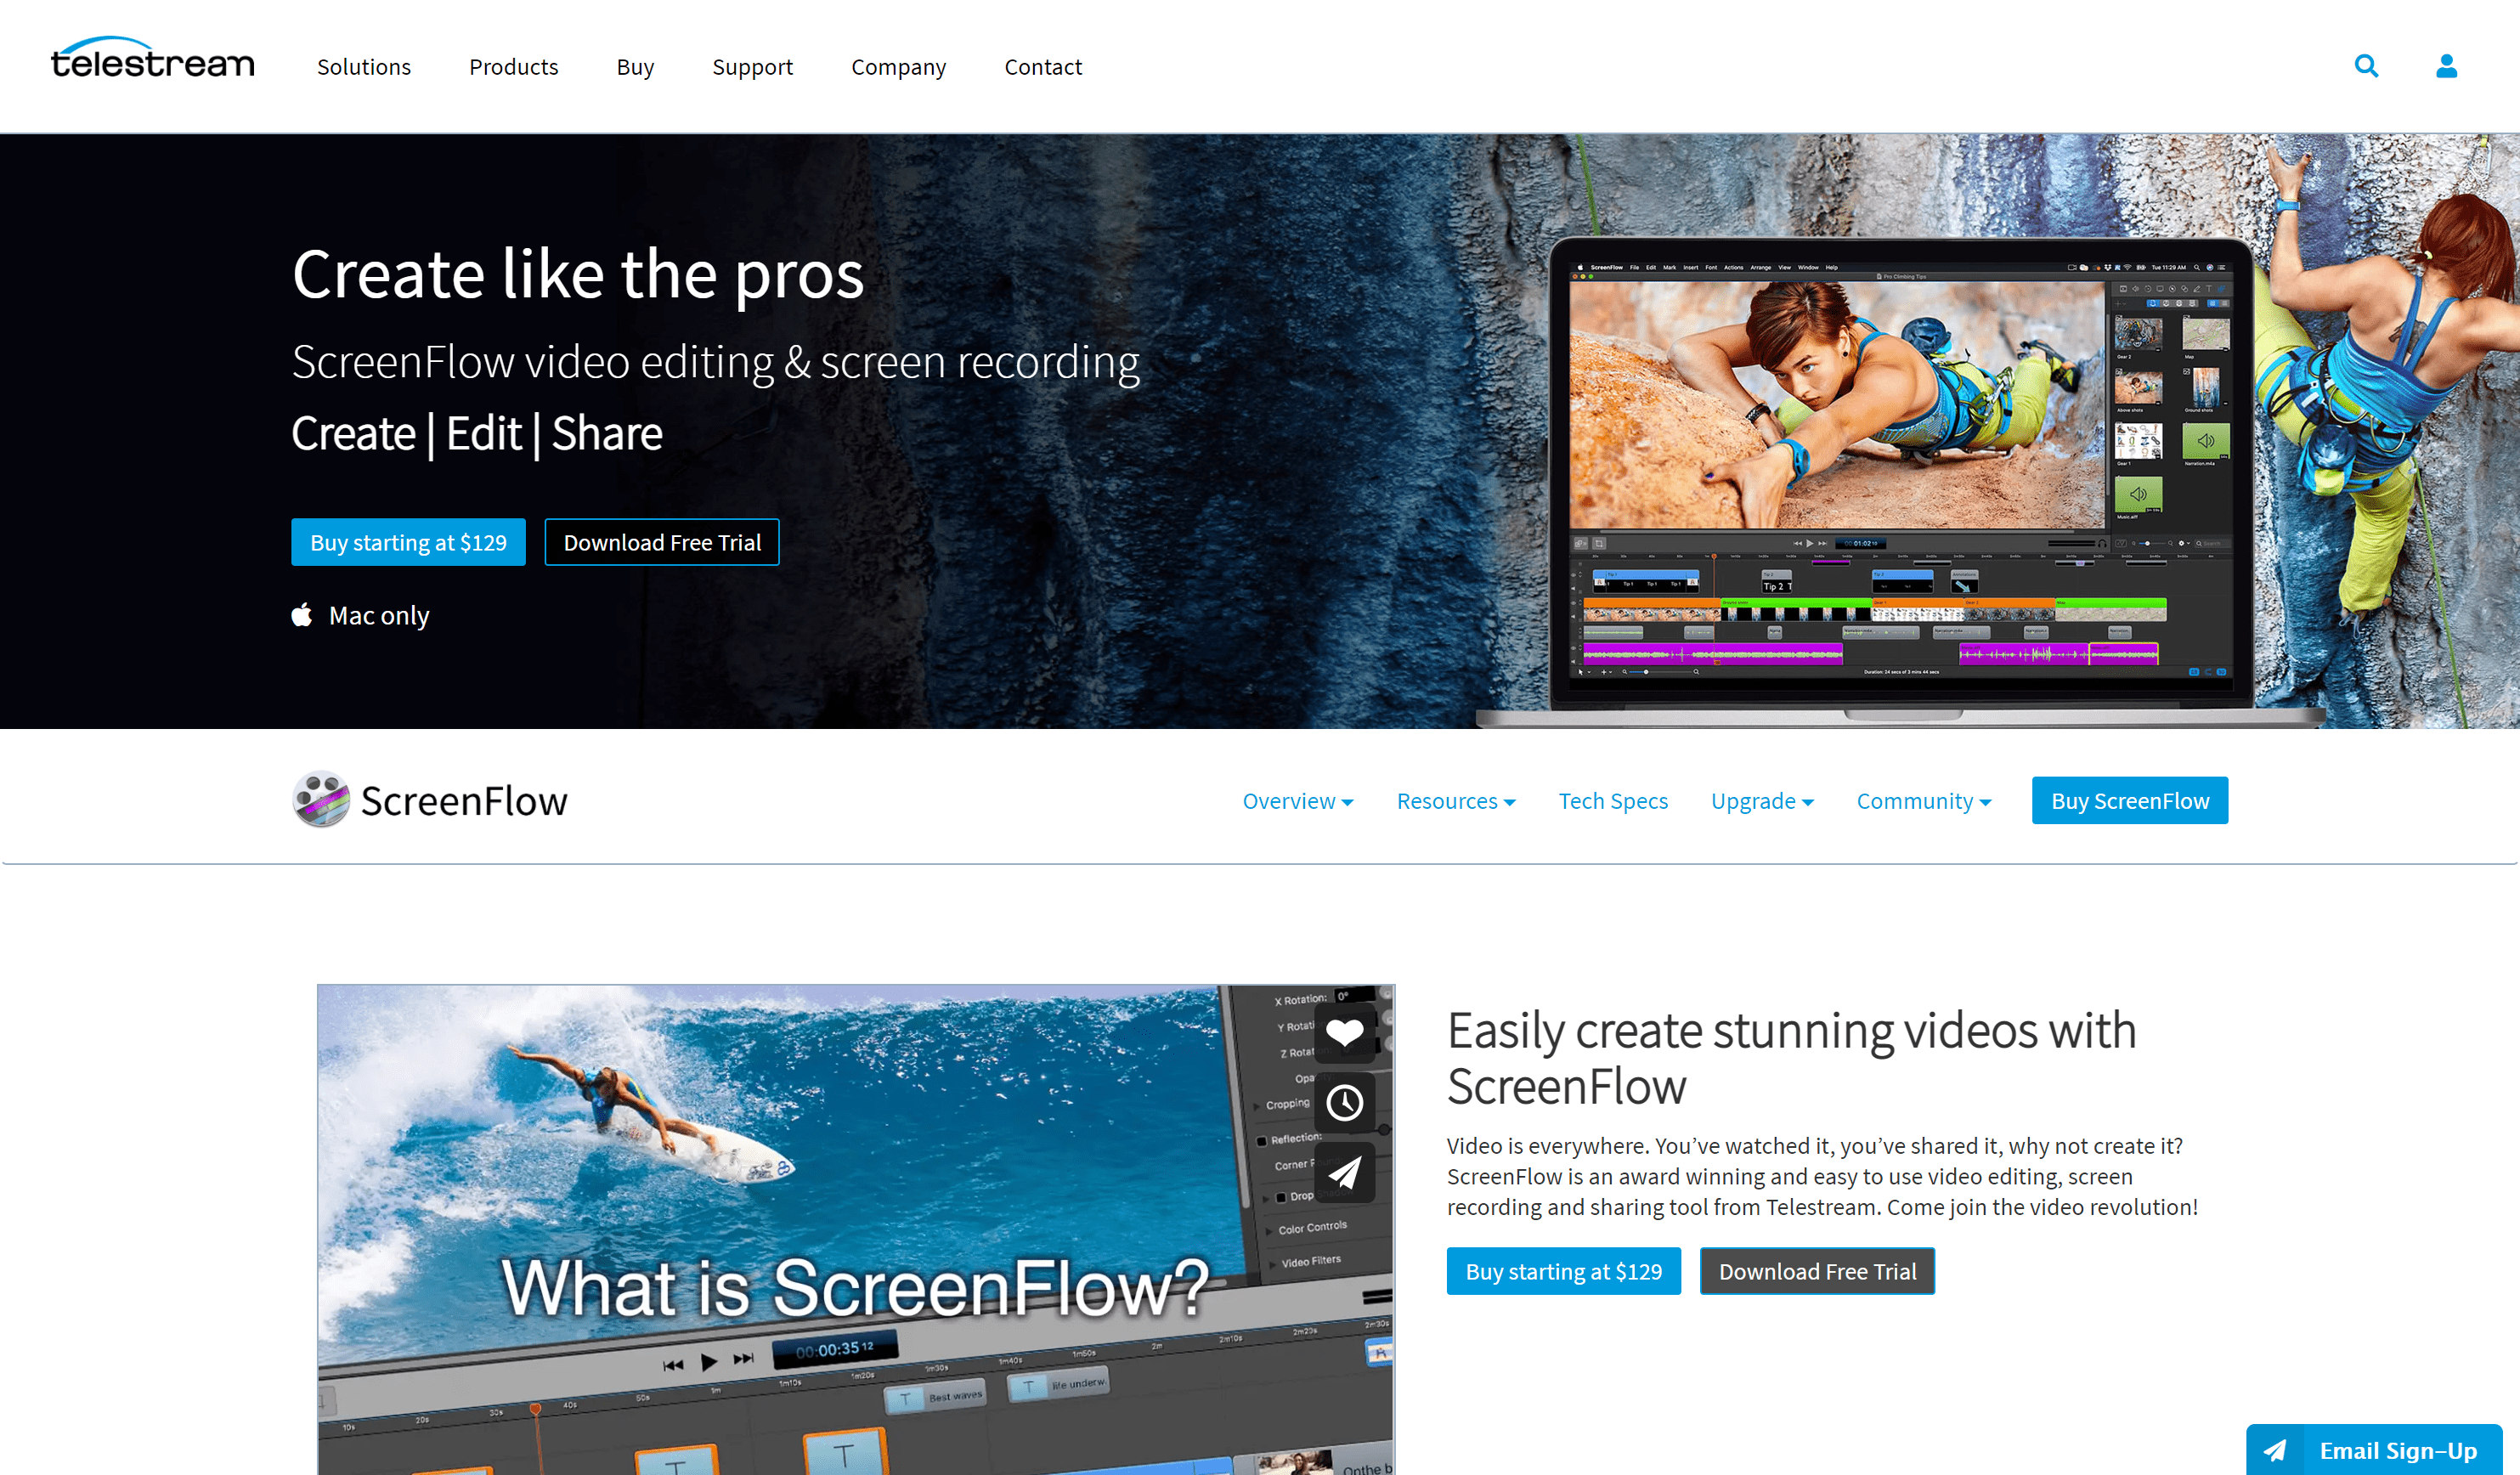 Screenflow coupons, discount codes